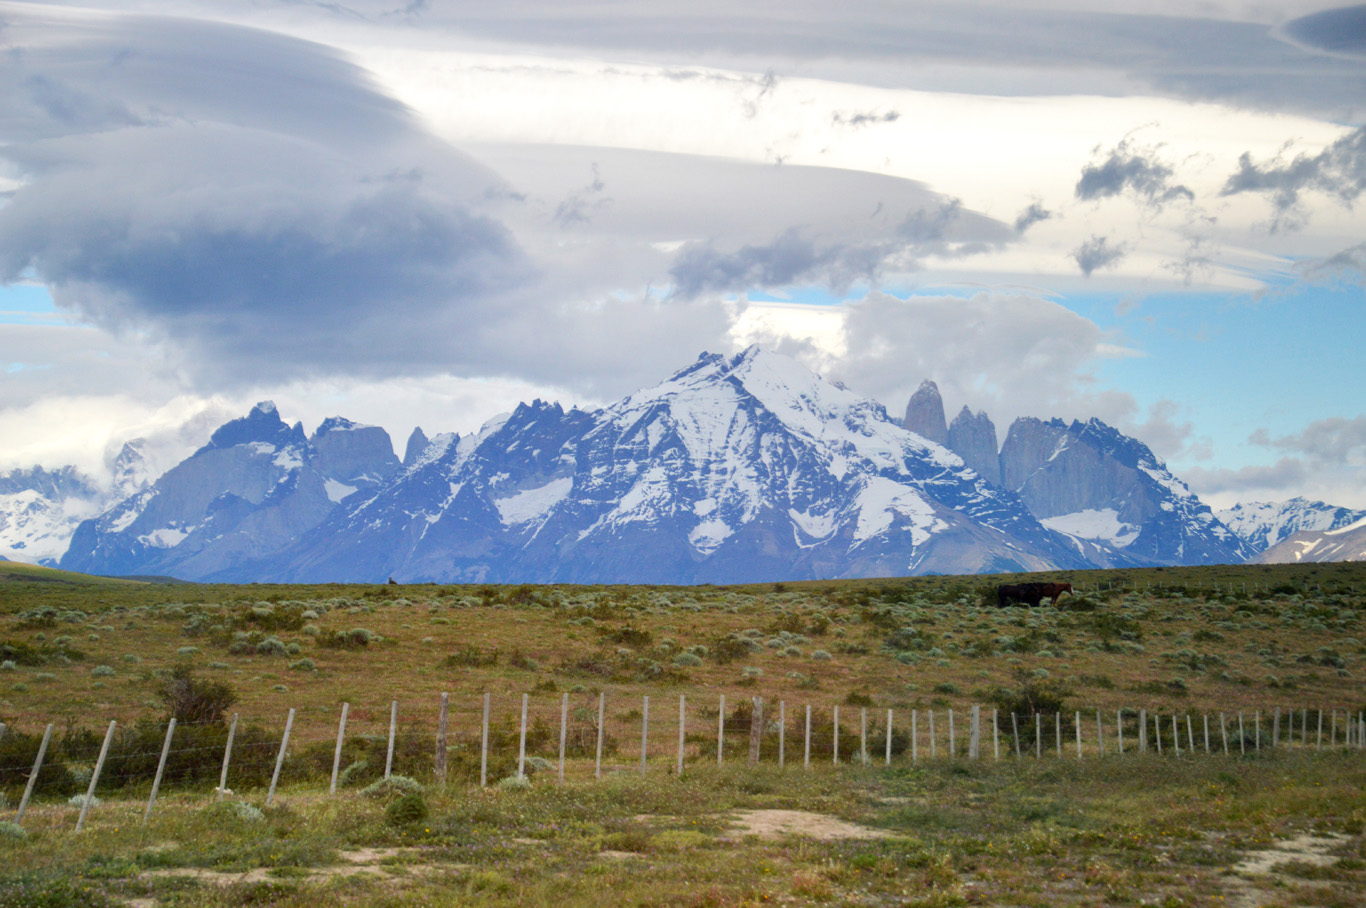 Approaching Torres del Paine National Park - a view from the bus